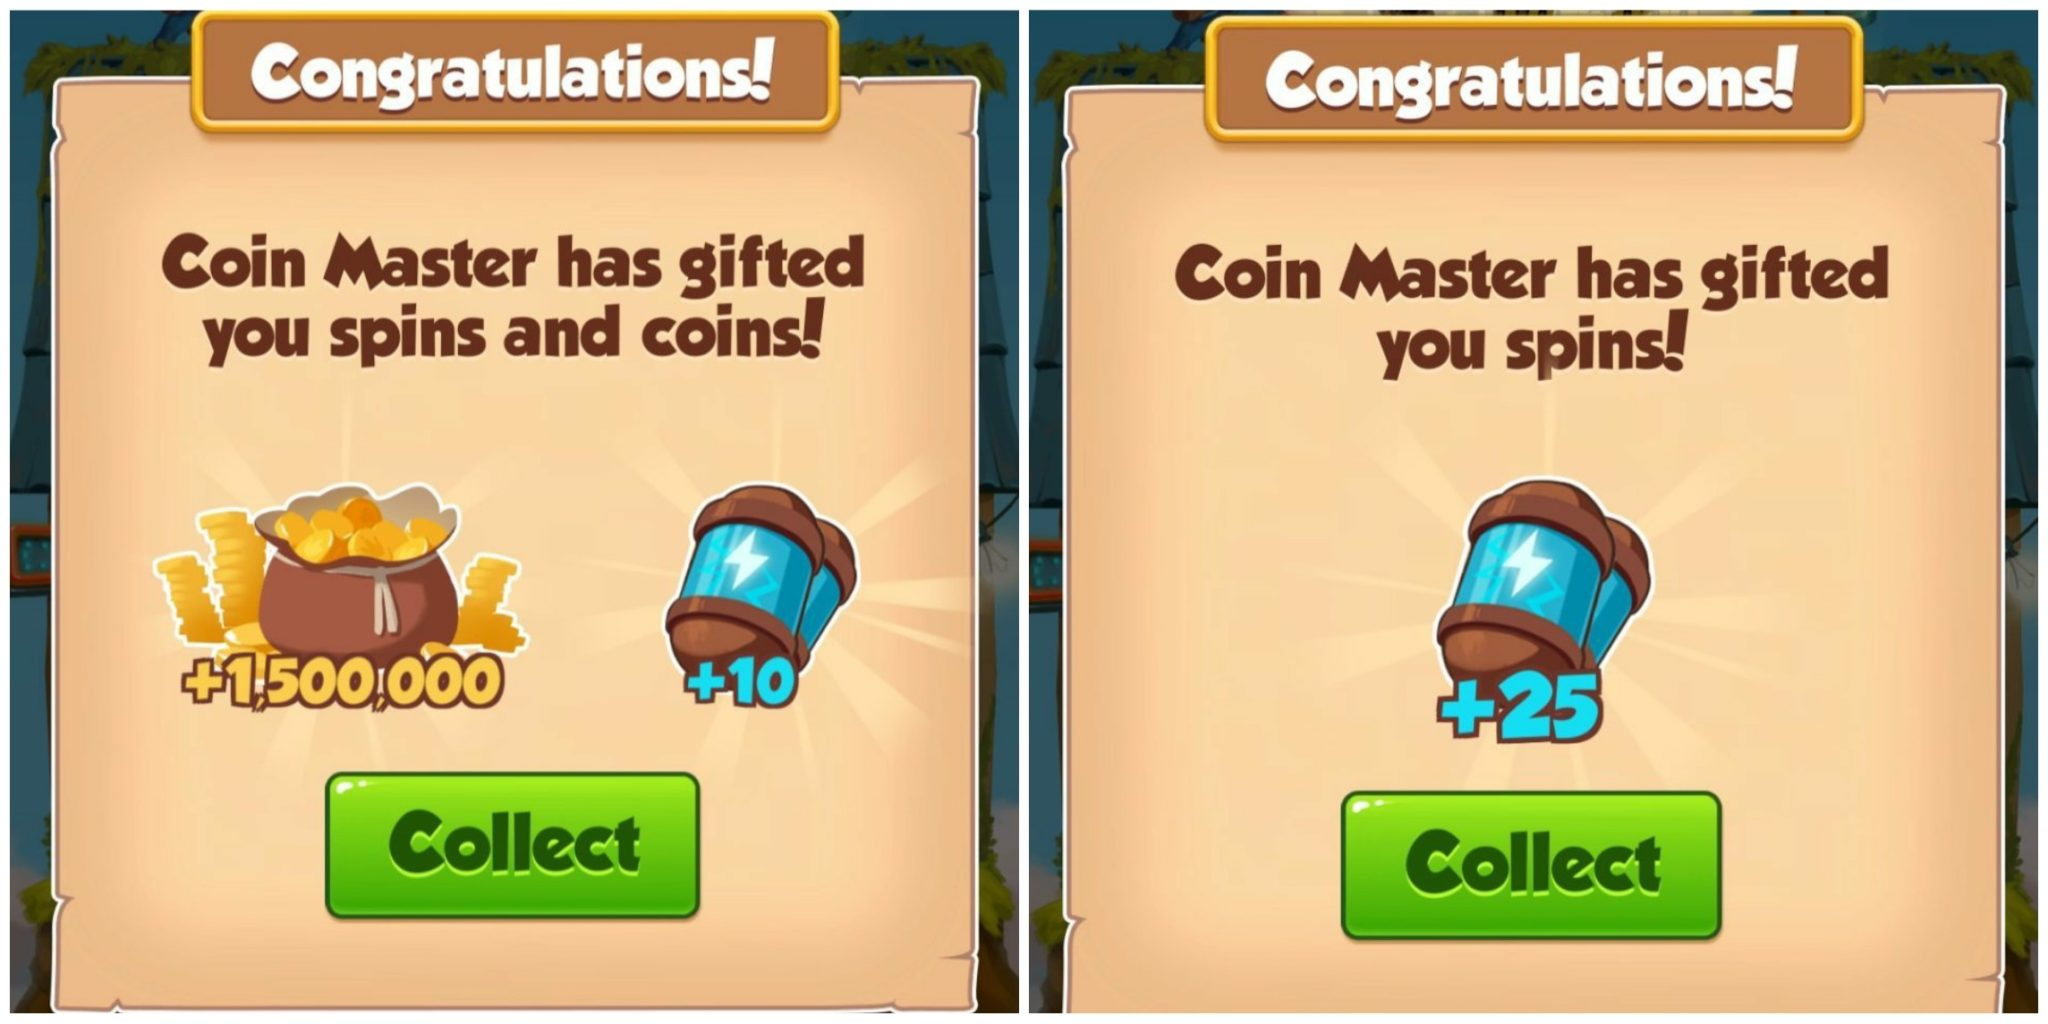 Coin Master Free Spin Link 2019